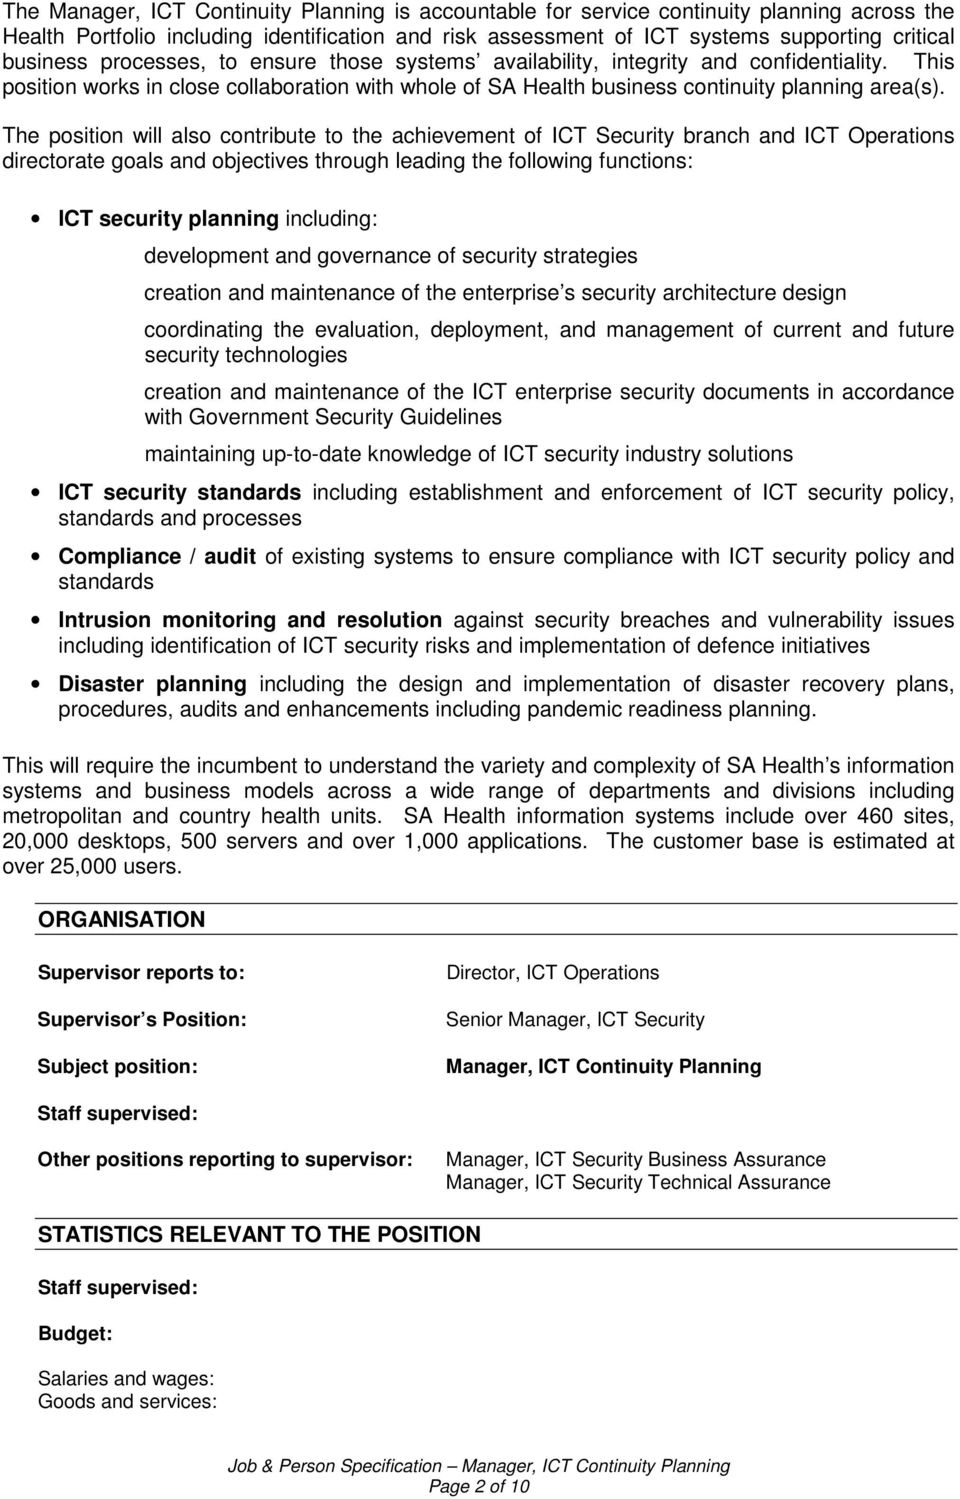 The position will also contribute to the achievement of ICT Security branch and ICT Operations directorate goals and objectives through leading the following functions: ICT security planning